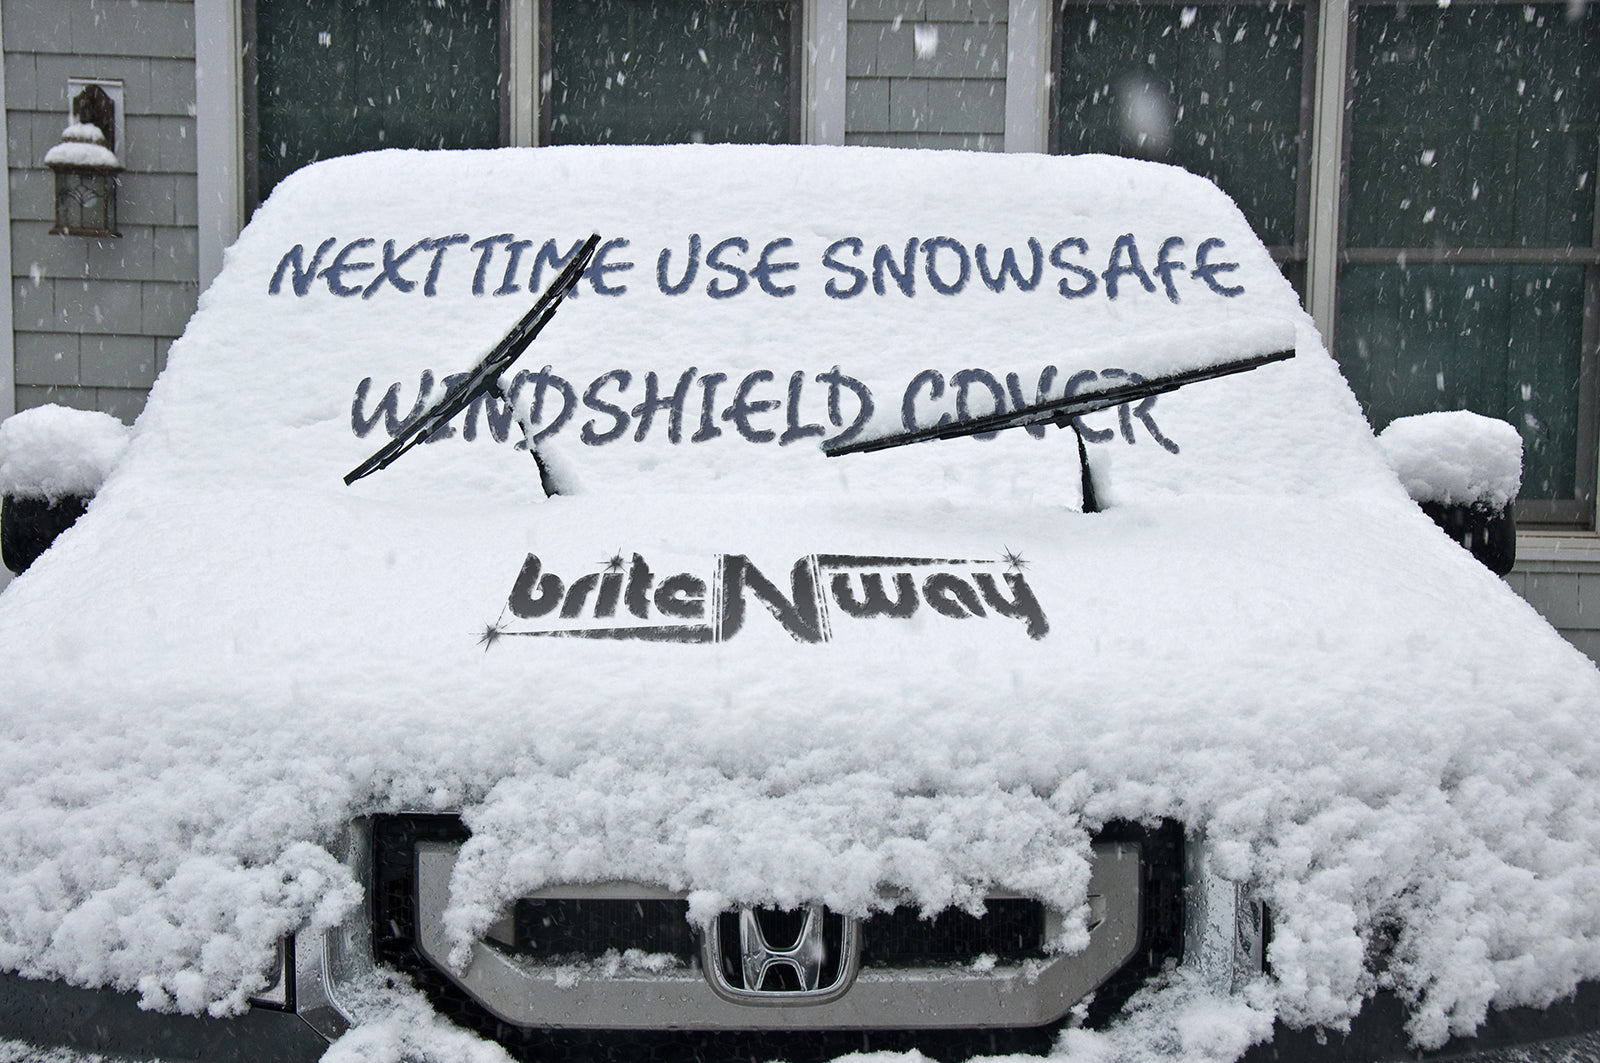 Windshield Snow Cover & Wiper Protector - Keep your Vehicle Exterior Frost Free and Clean